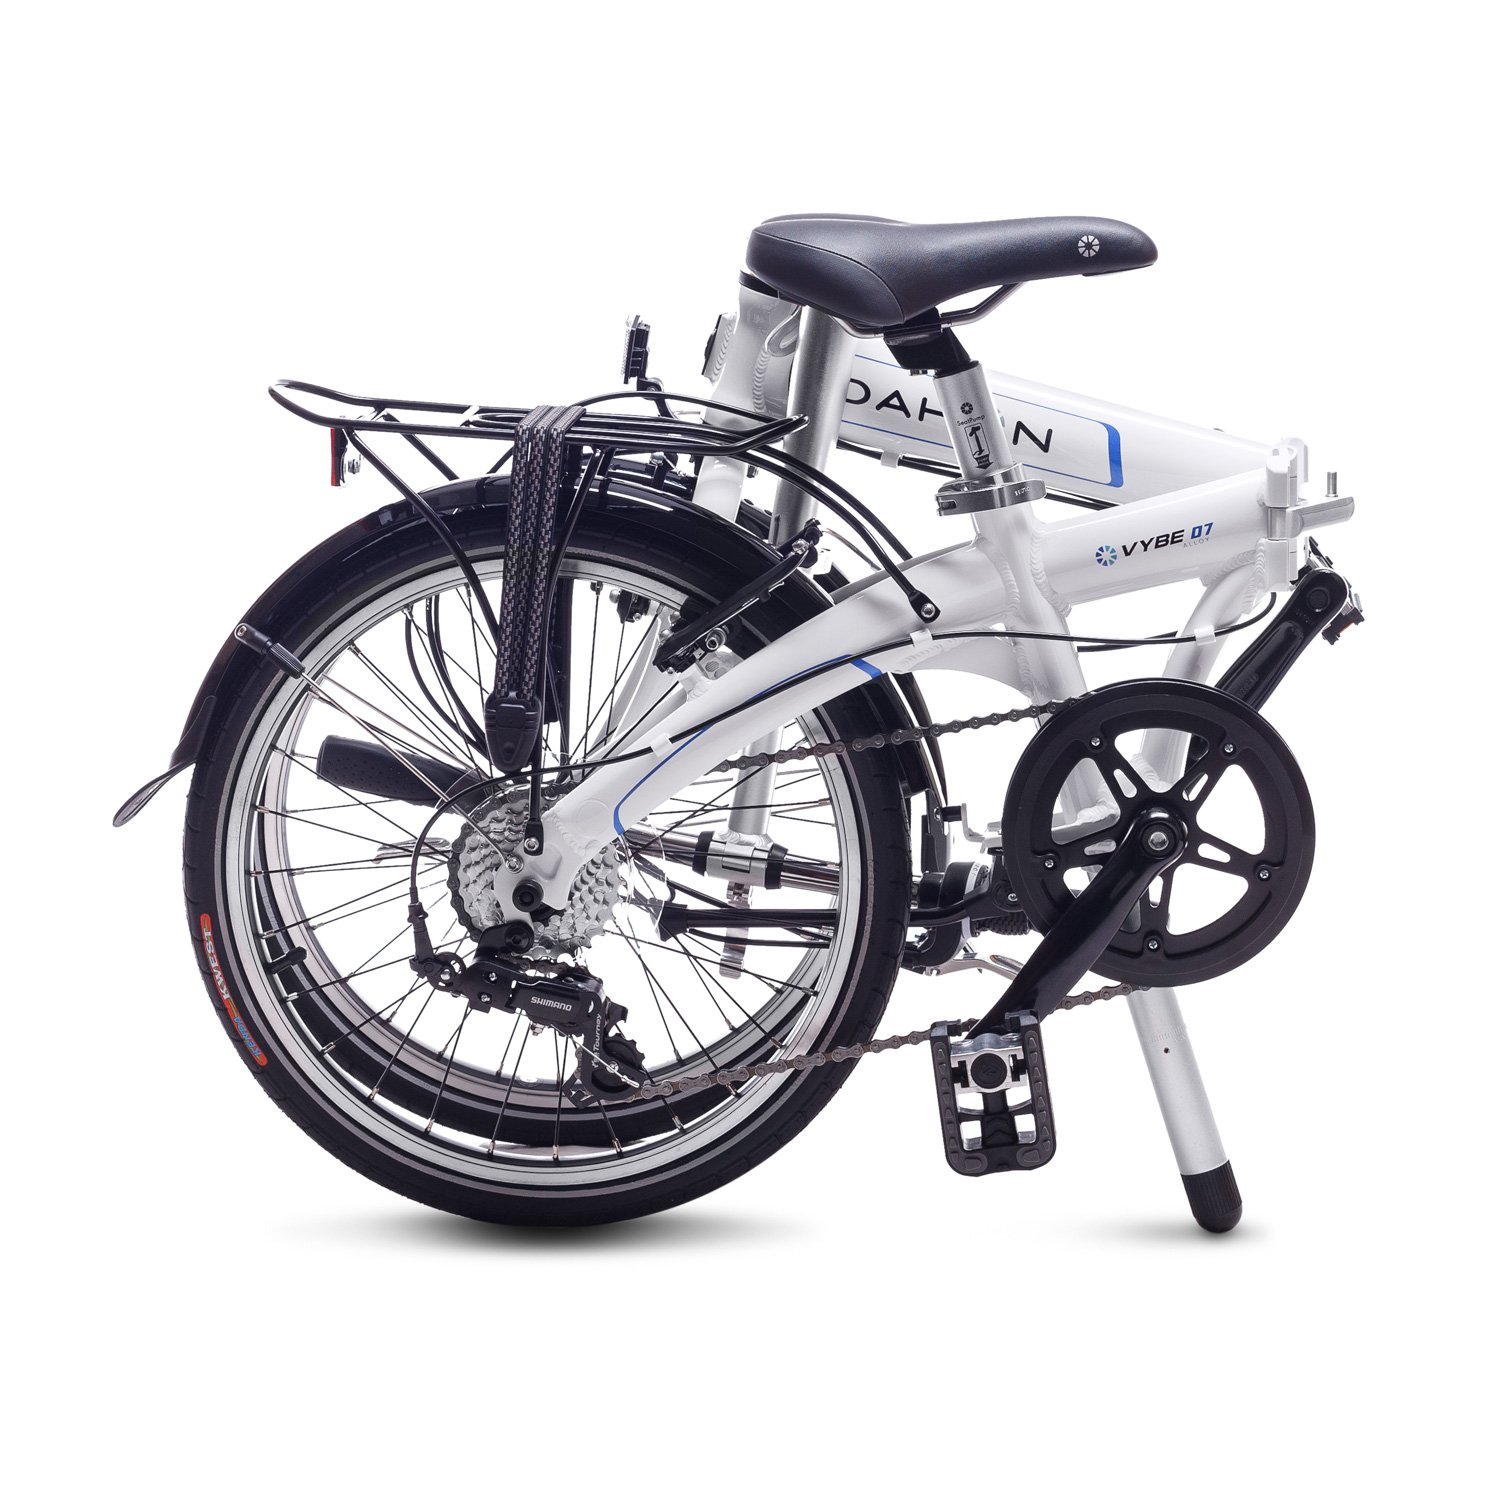 Dahon Vybe D7 Bicicleta Plegable, Unisex Adulto, Blanco Cloud, 20